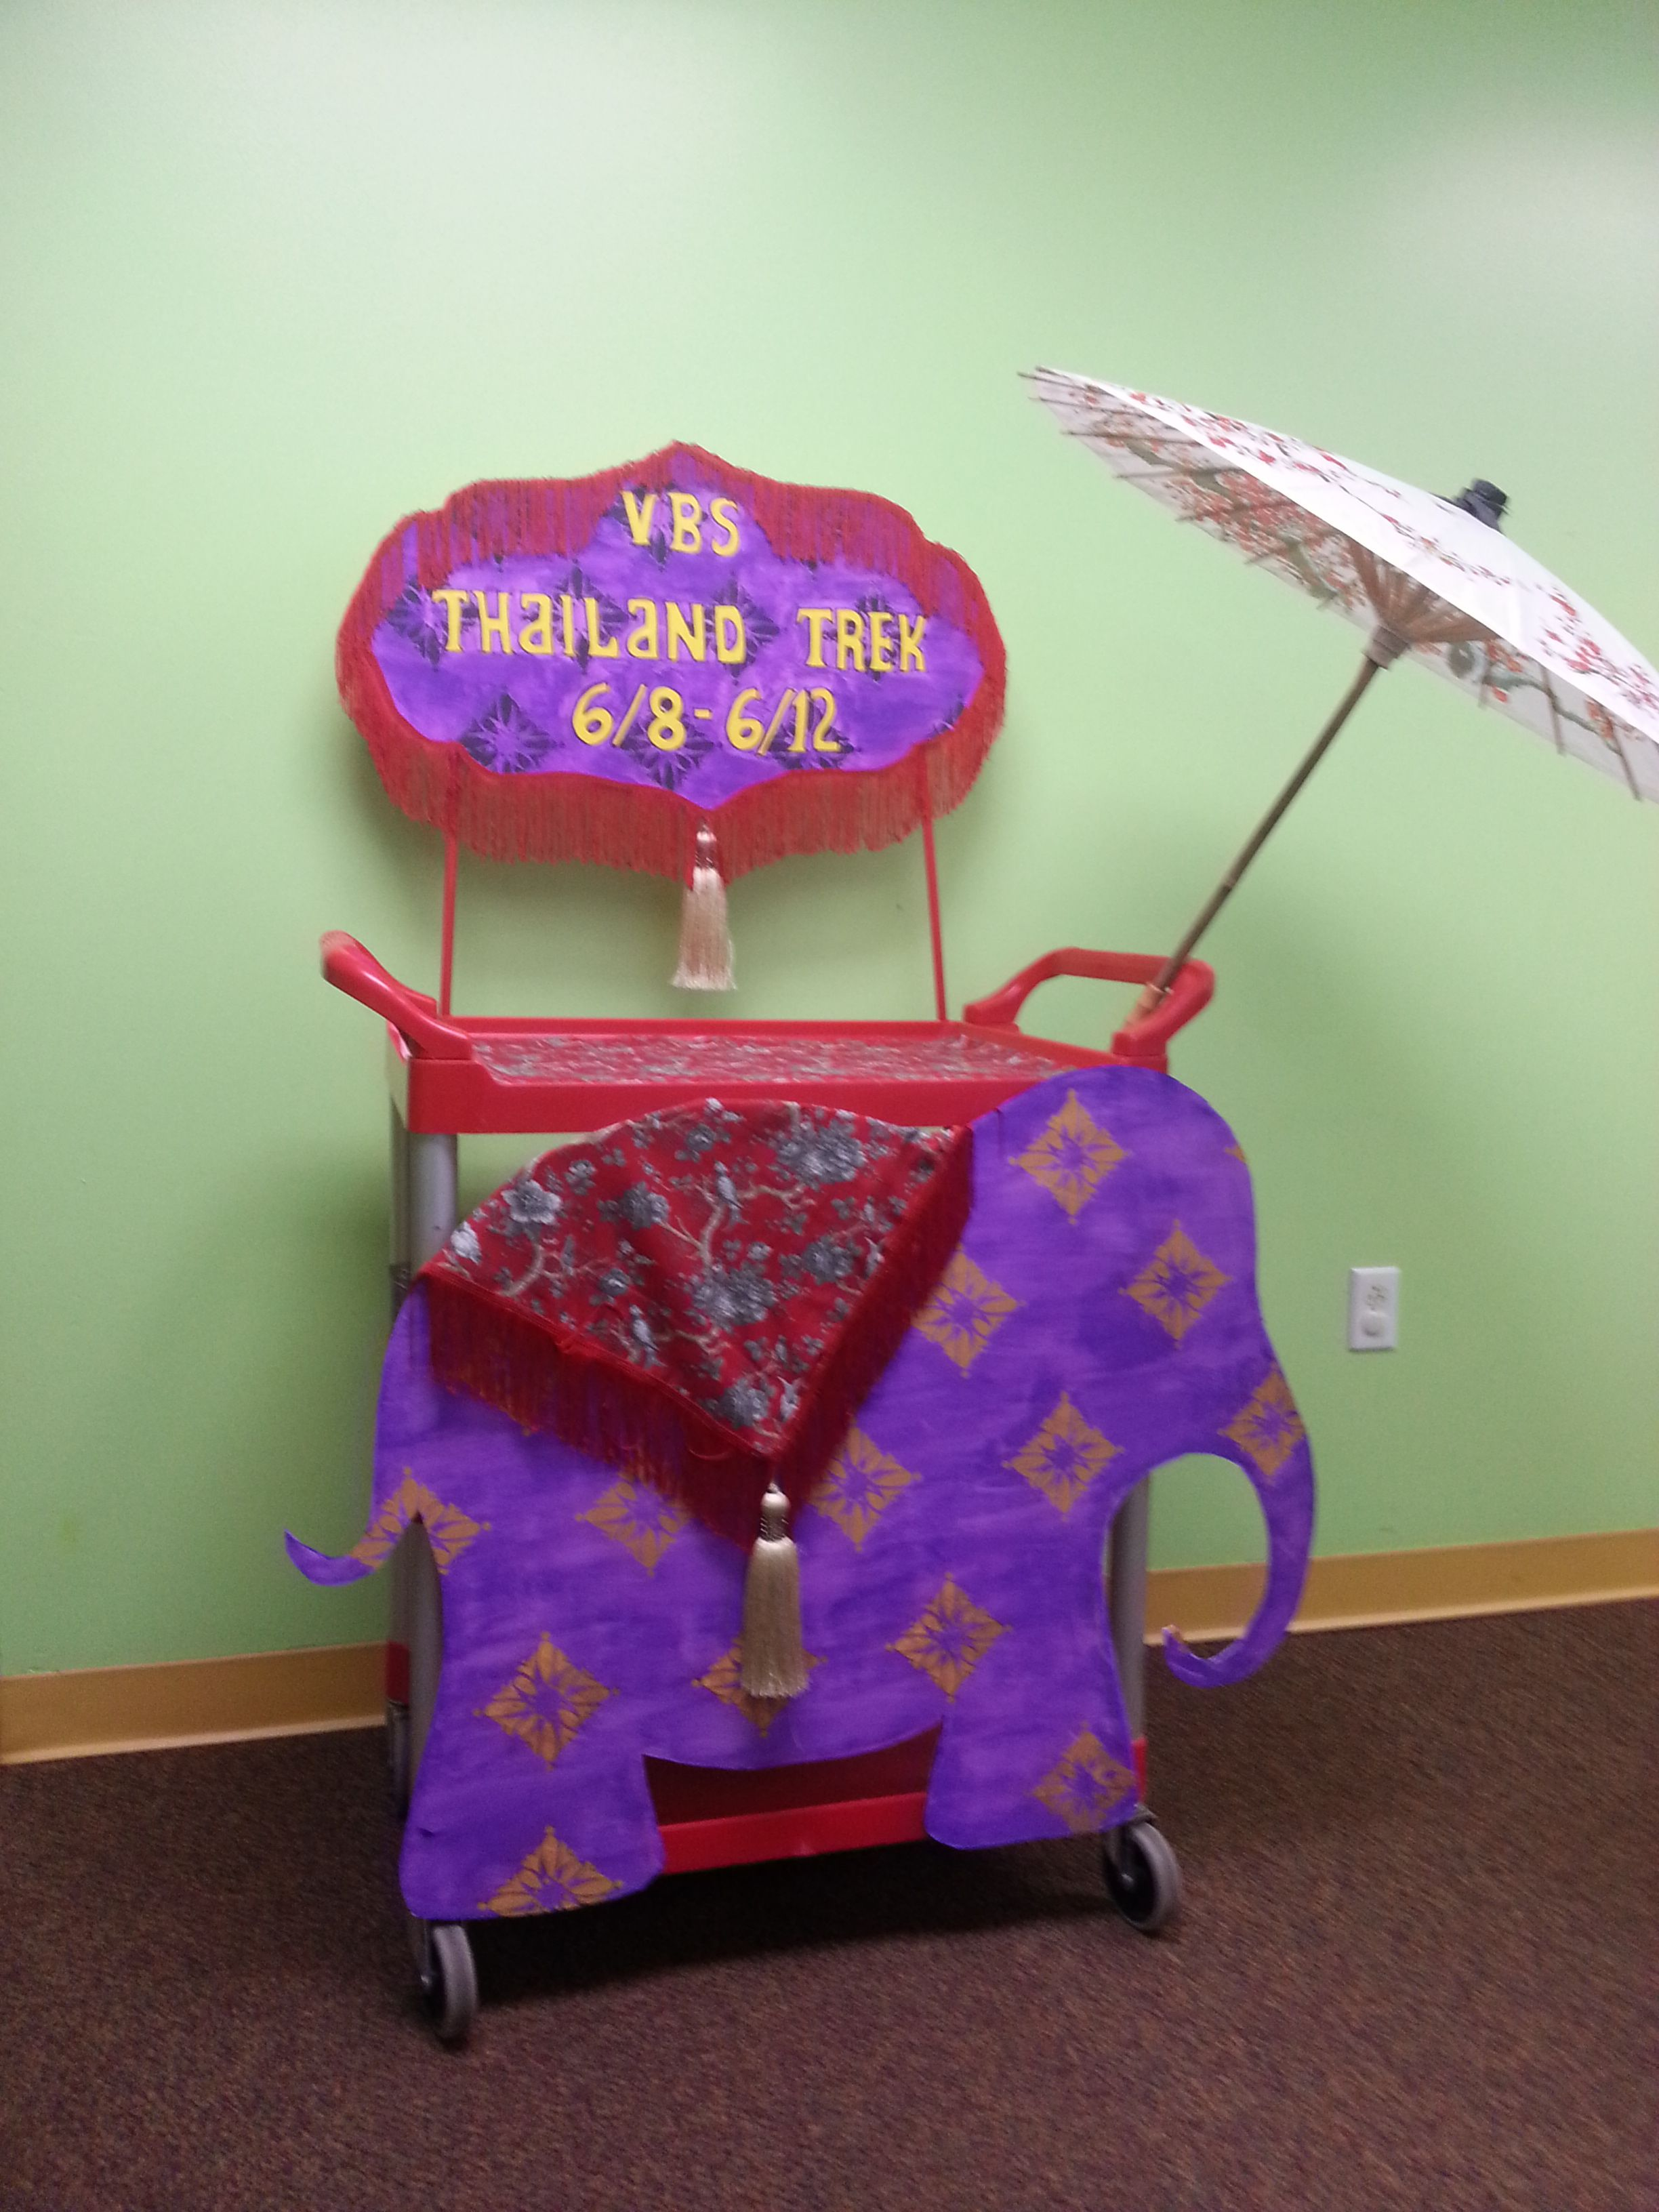 VBS registration cart It is a regular cart with wheels and it can